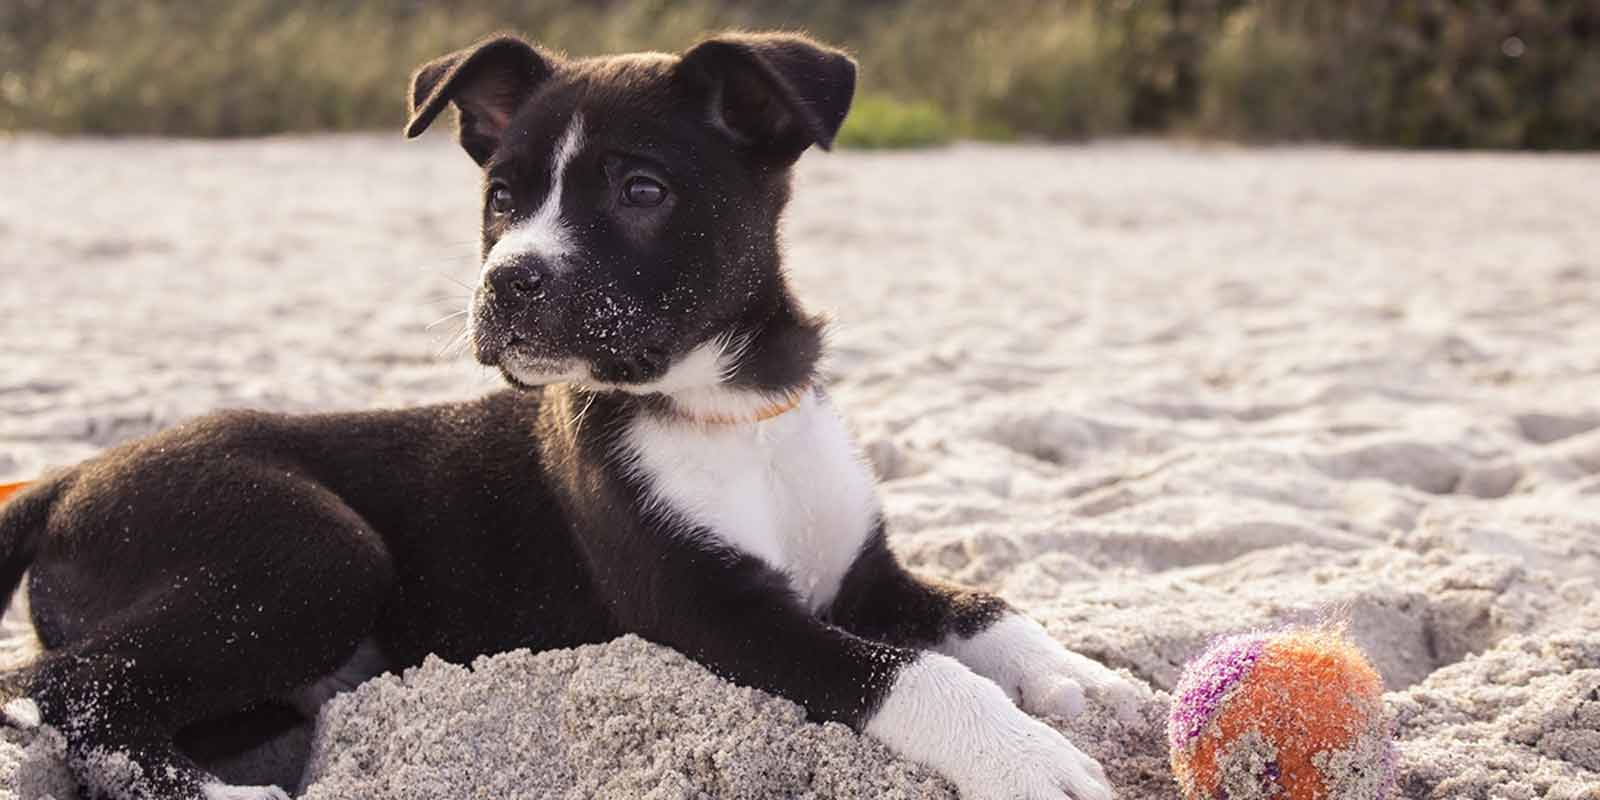 Beautiful black puppy playing with a ball on the sandy beach